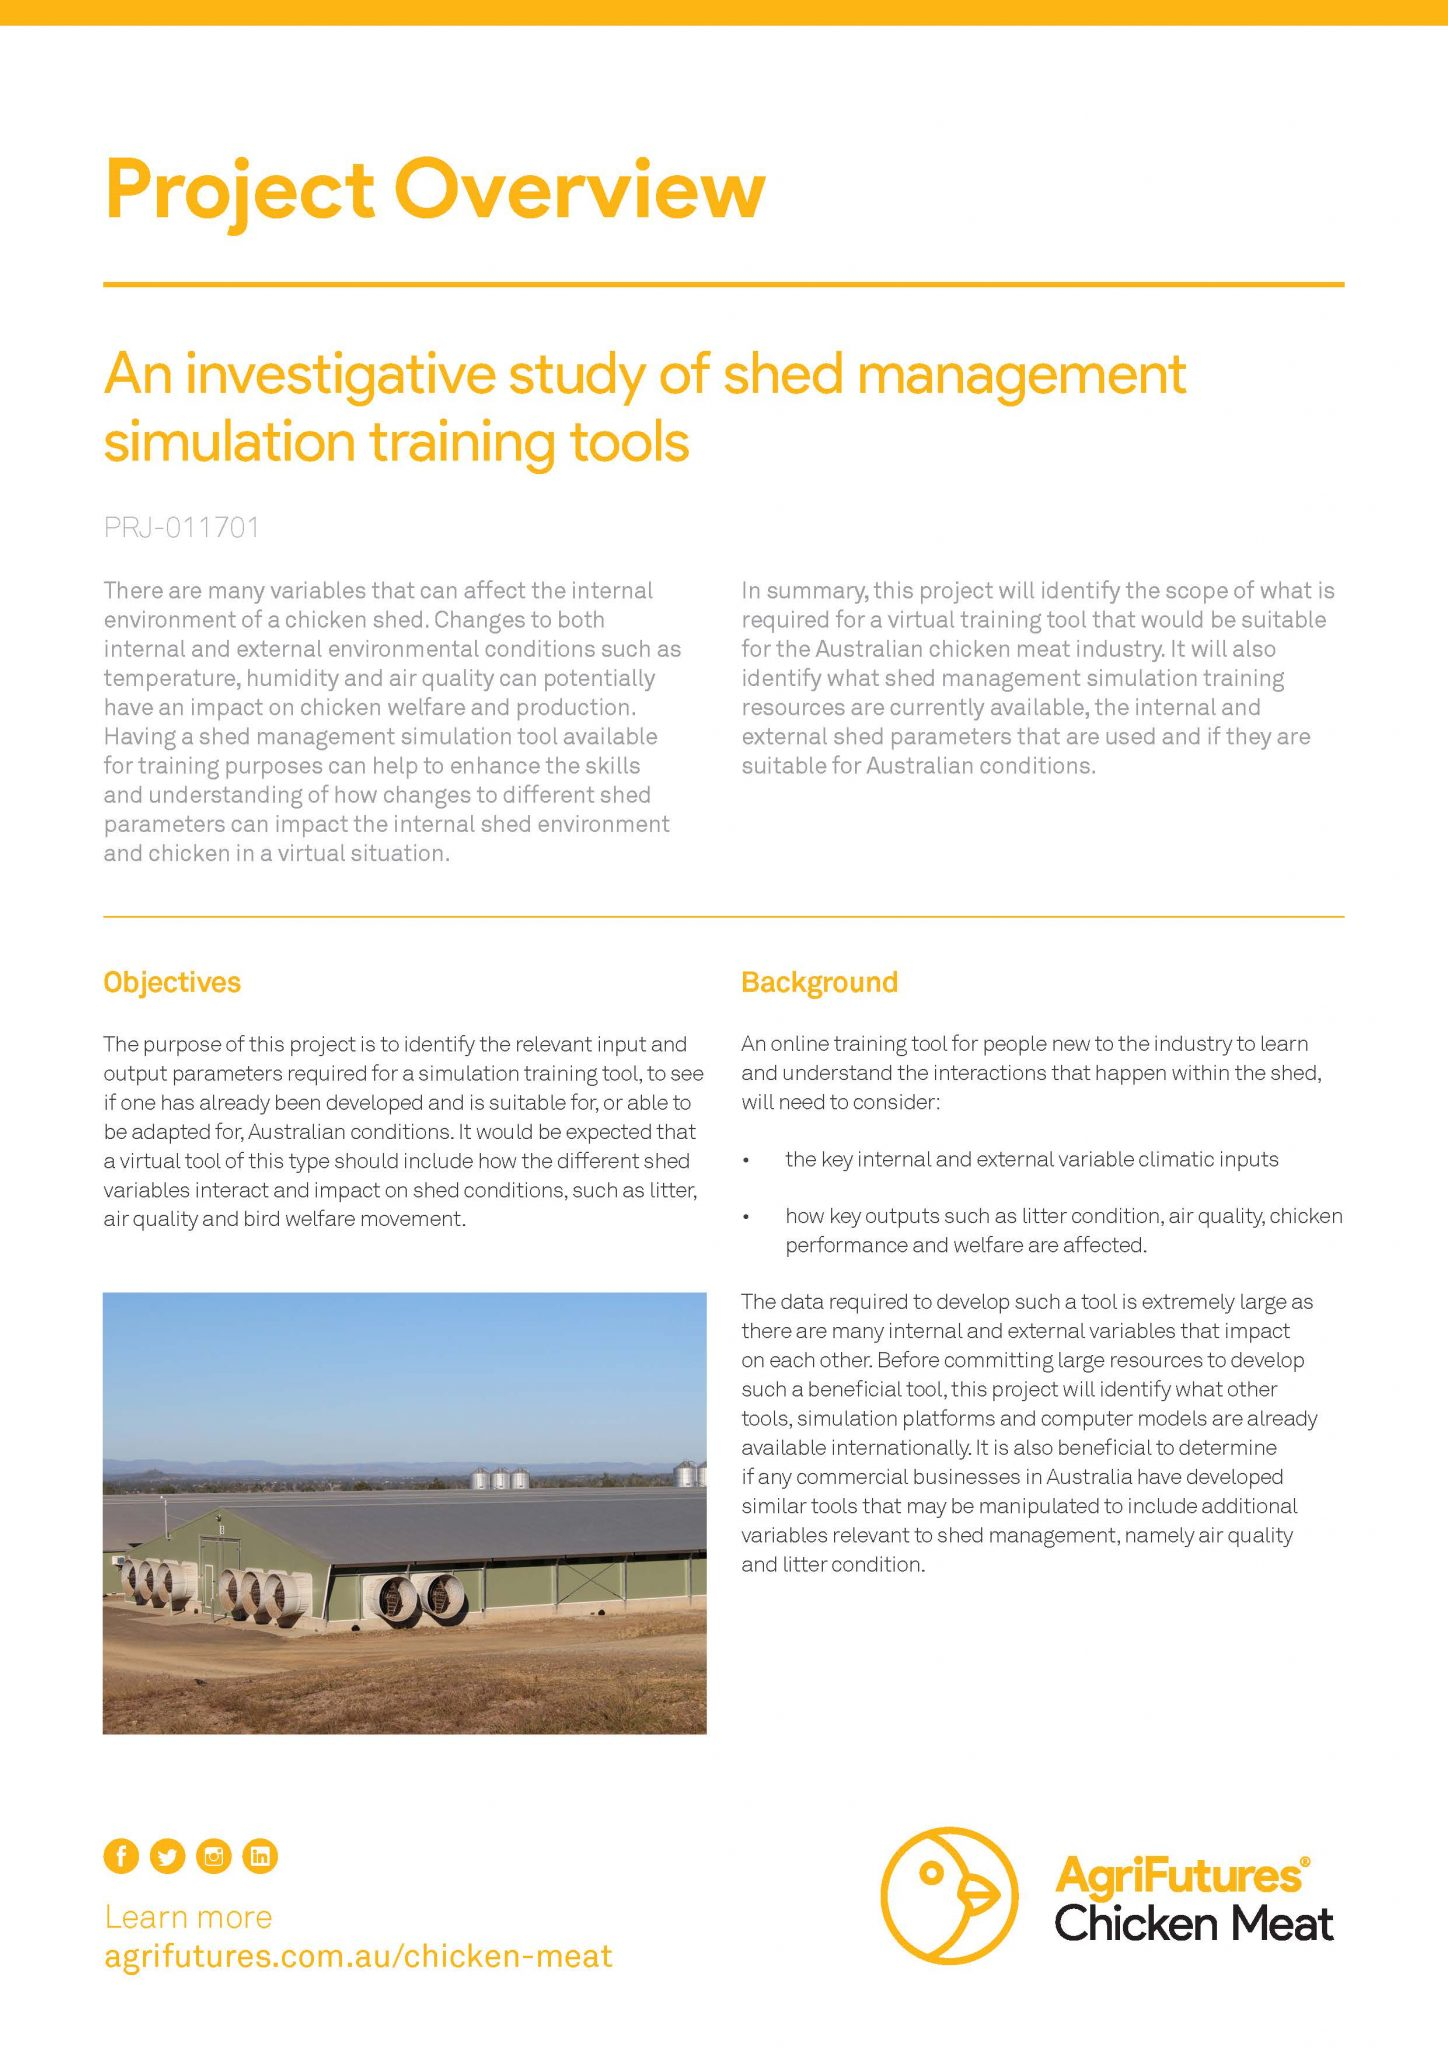 Project overview: An investigative study of shed management simulation training tools - image